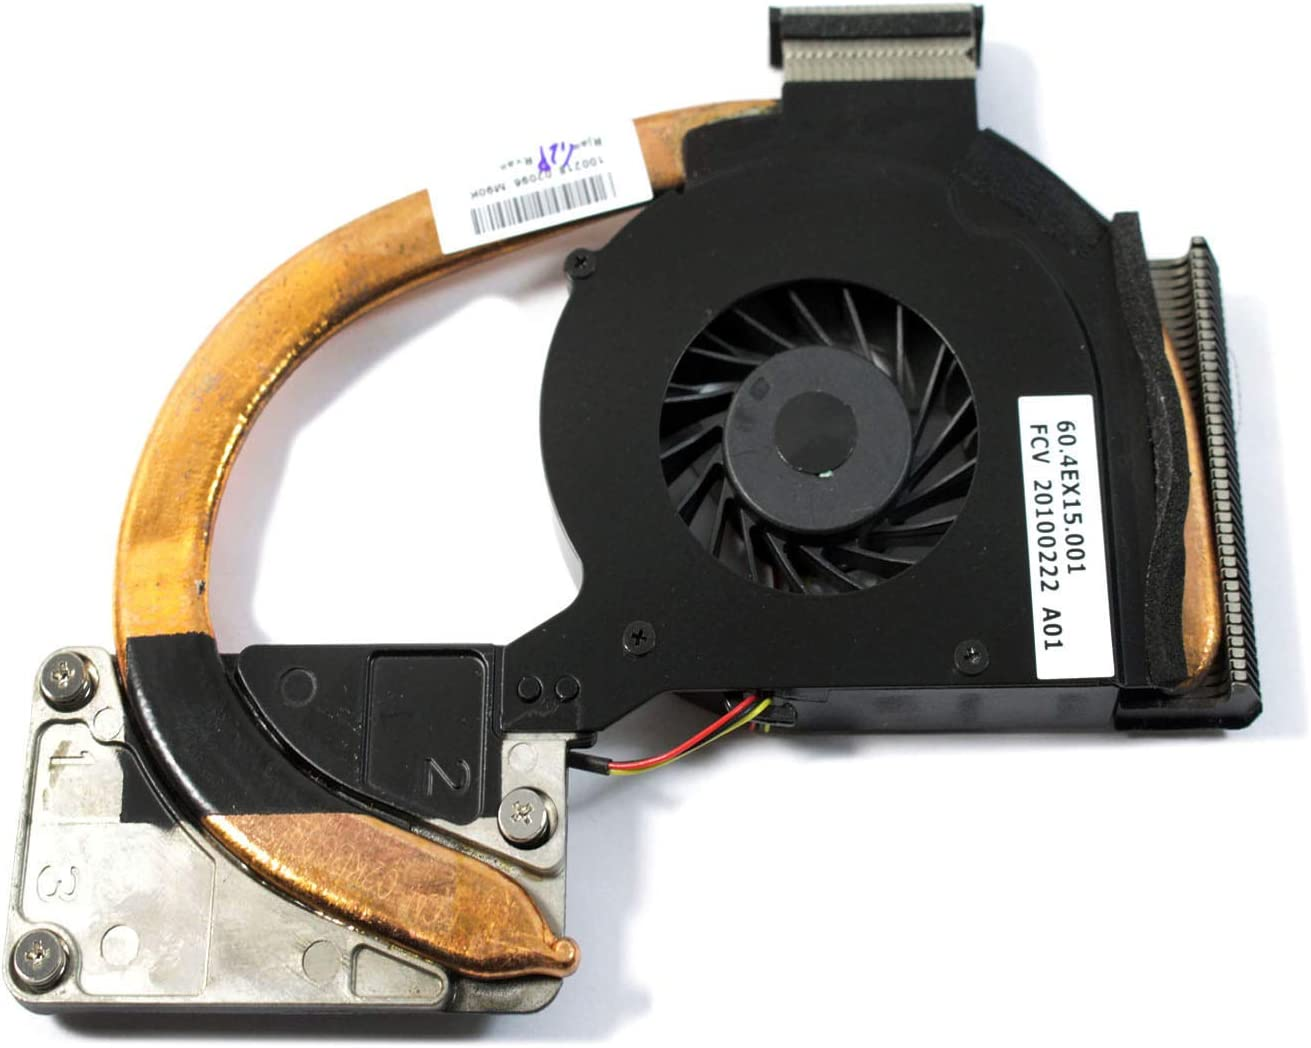 Dell Vostro 3300 CPU Cooling Fan and Heatsink 5HN30